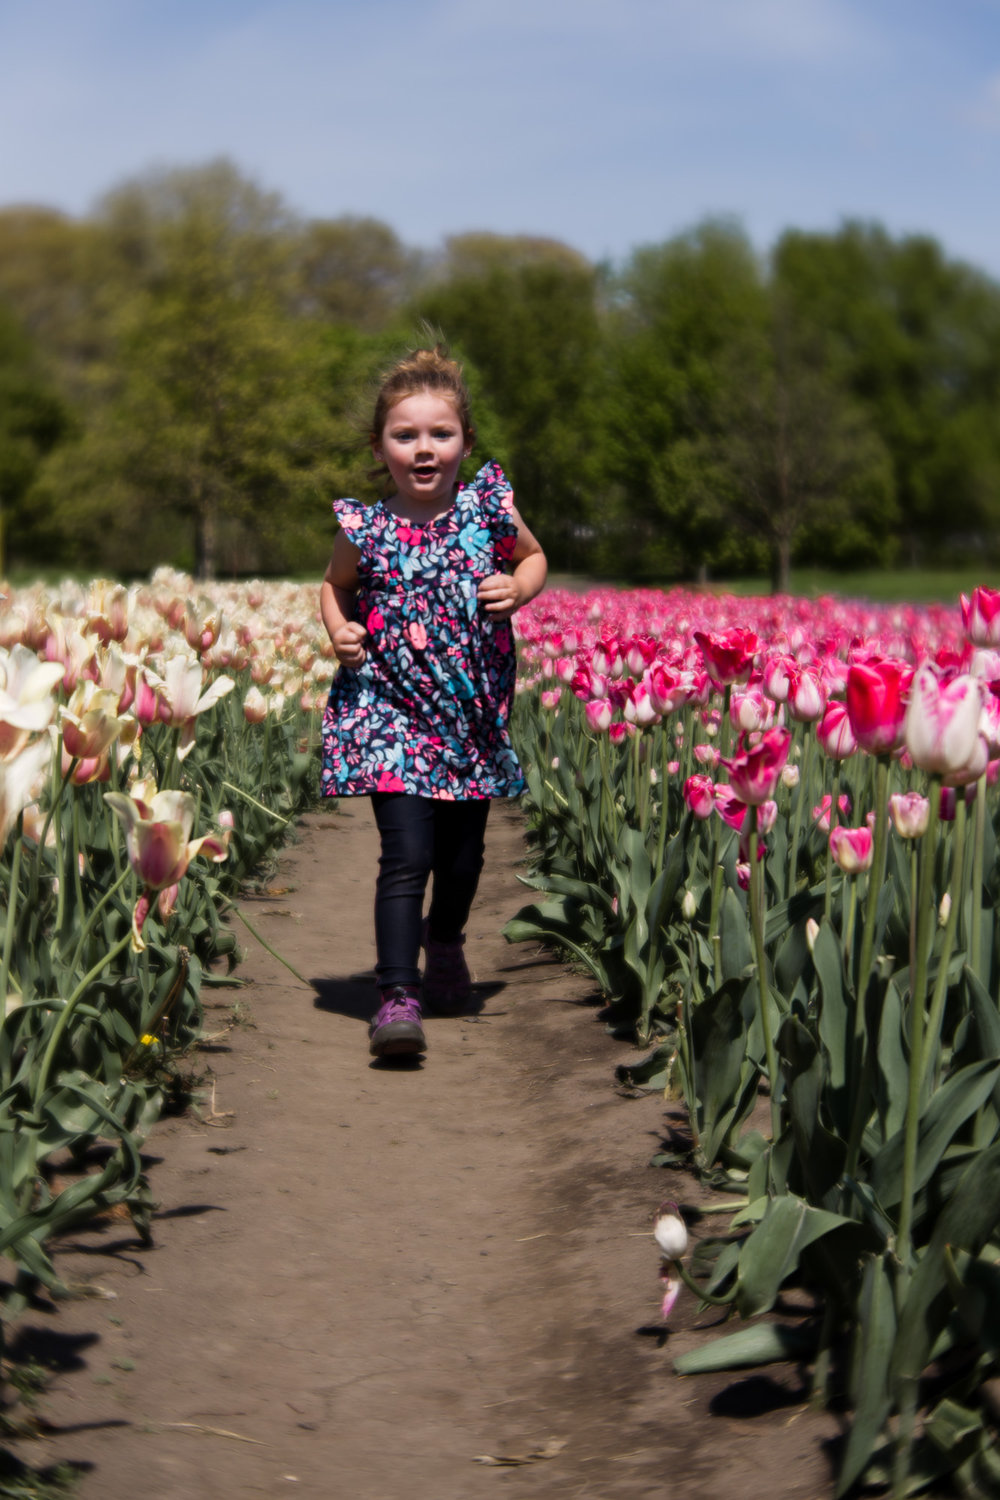 Kalamazoo-Photographer-Amanda-Schwab-Photography-Running-in-tulips